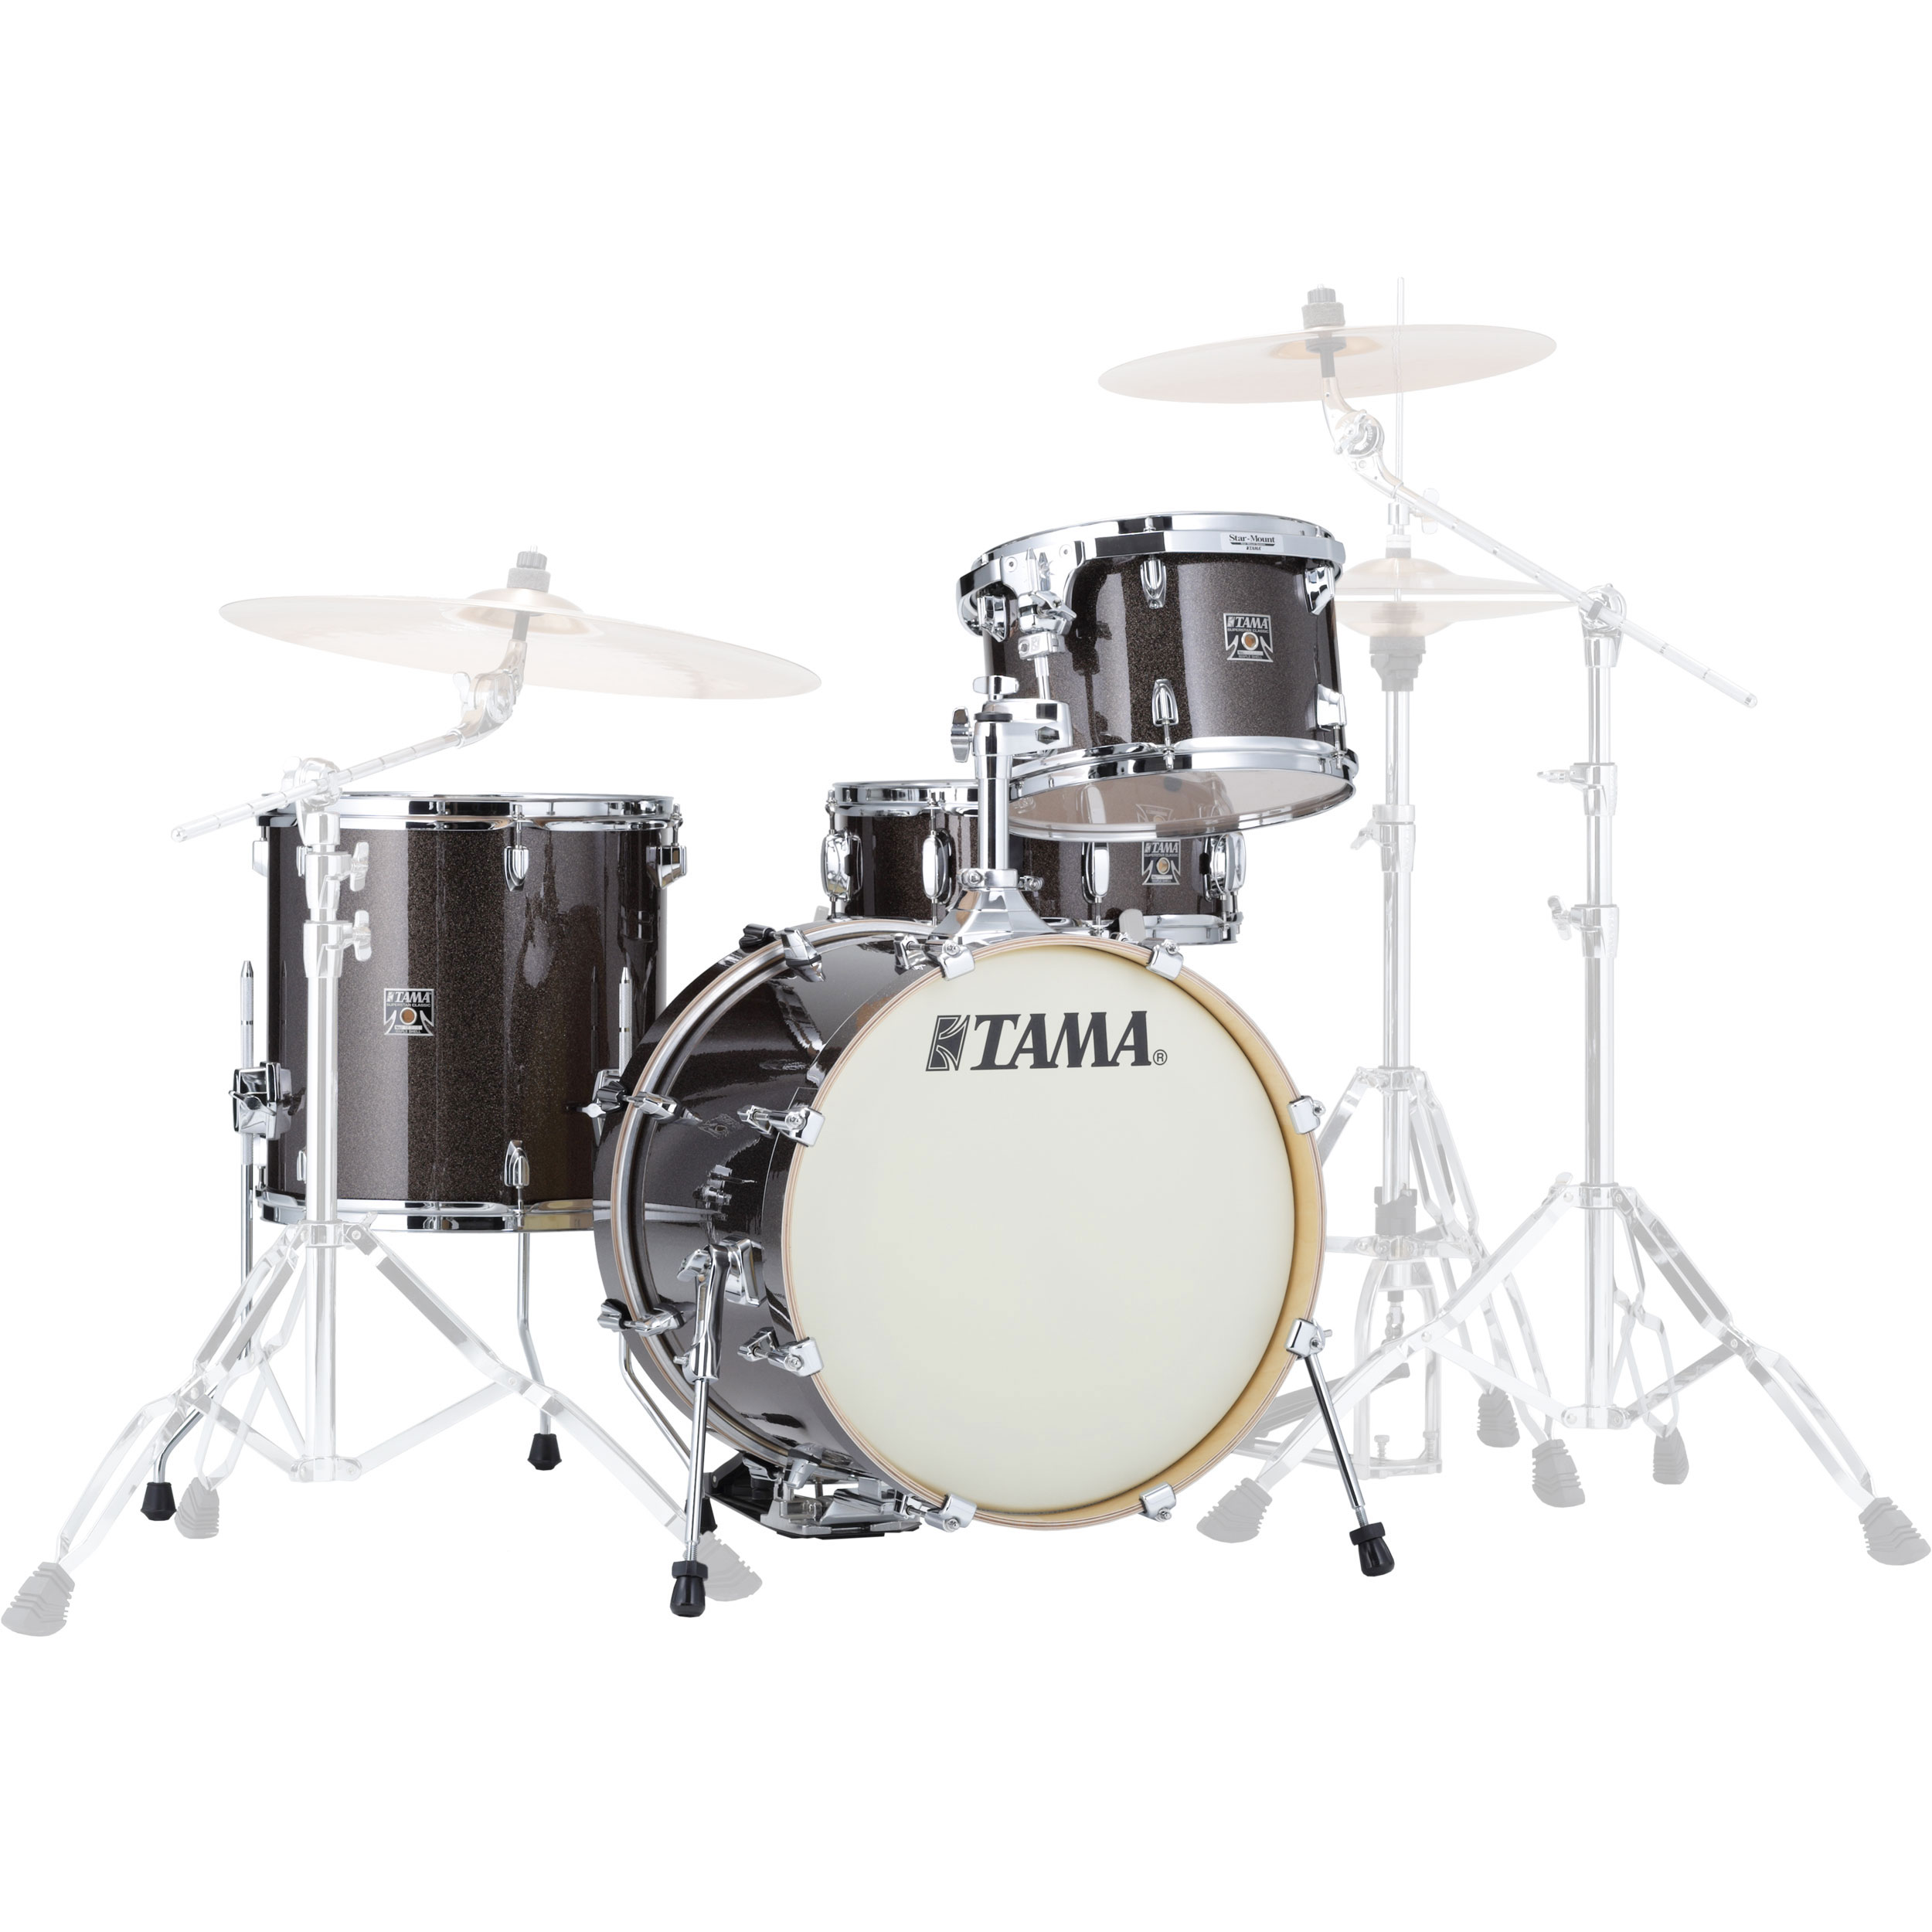 "Tama Superstar Classic ""Jazz Kit"" 4-Piece Drum Set Shell Pack (18"" Bass, 12/14"" Toms, 14"" Snare) in Wrap Finish"